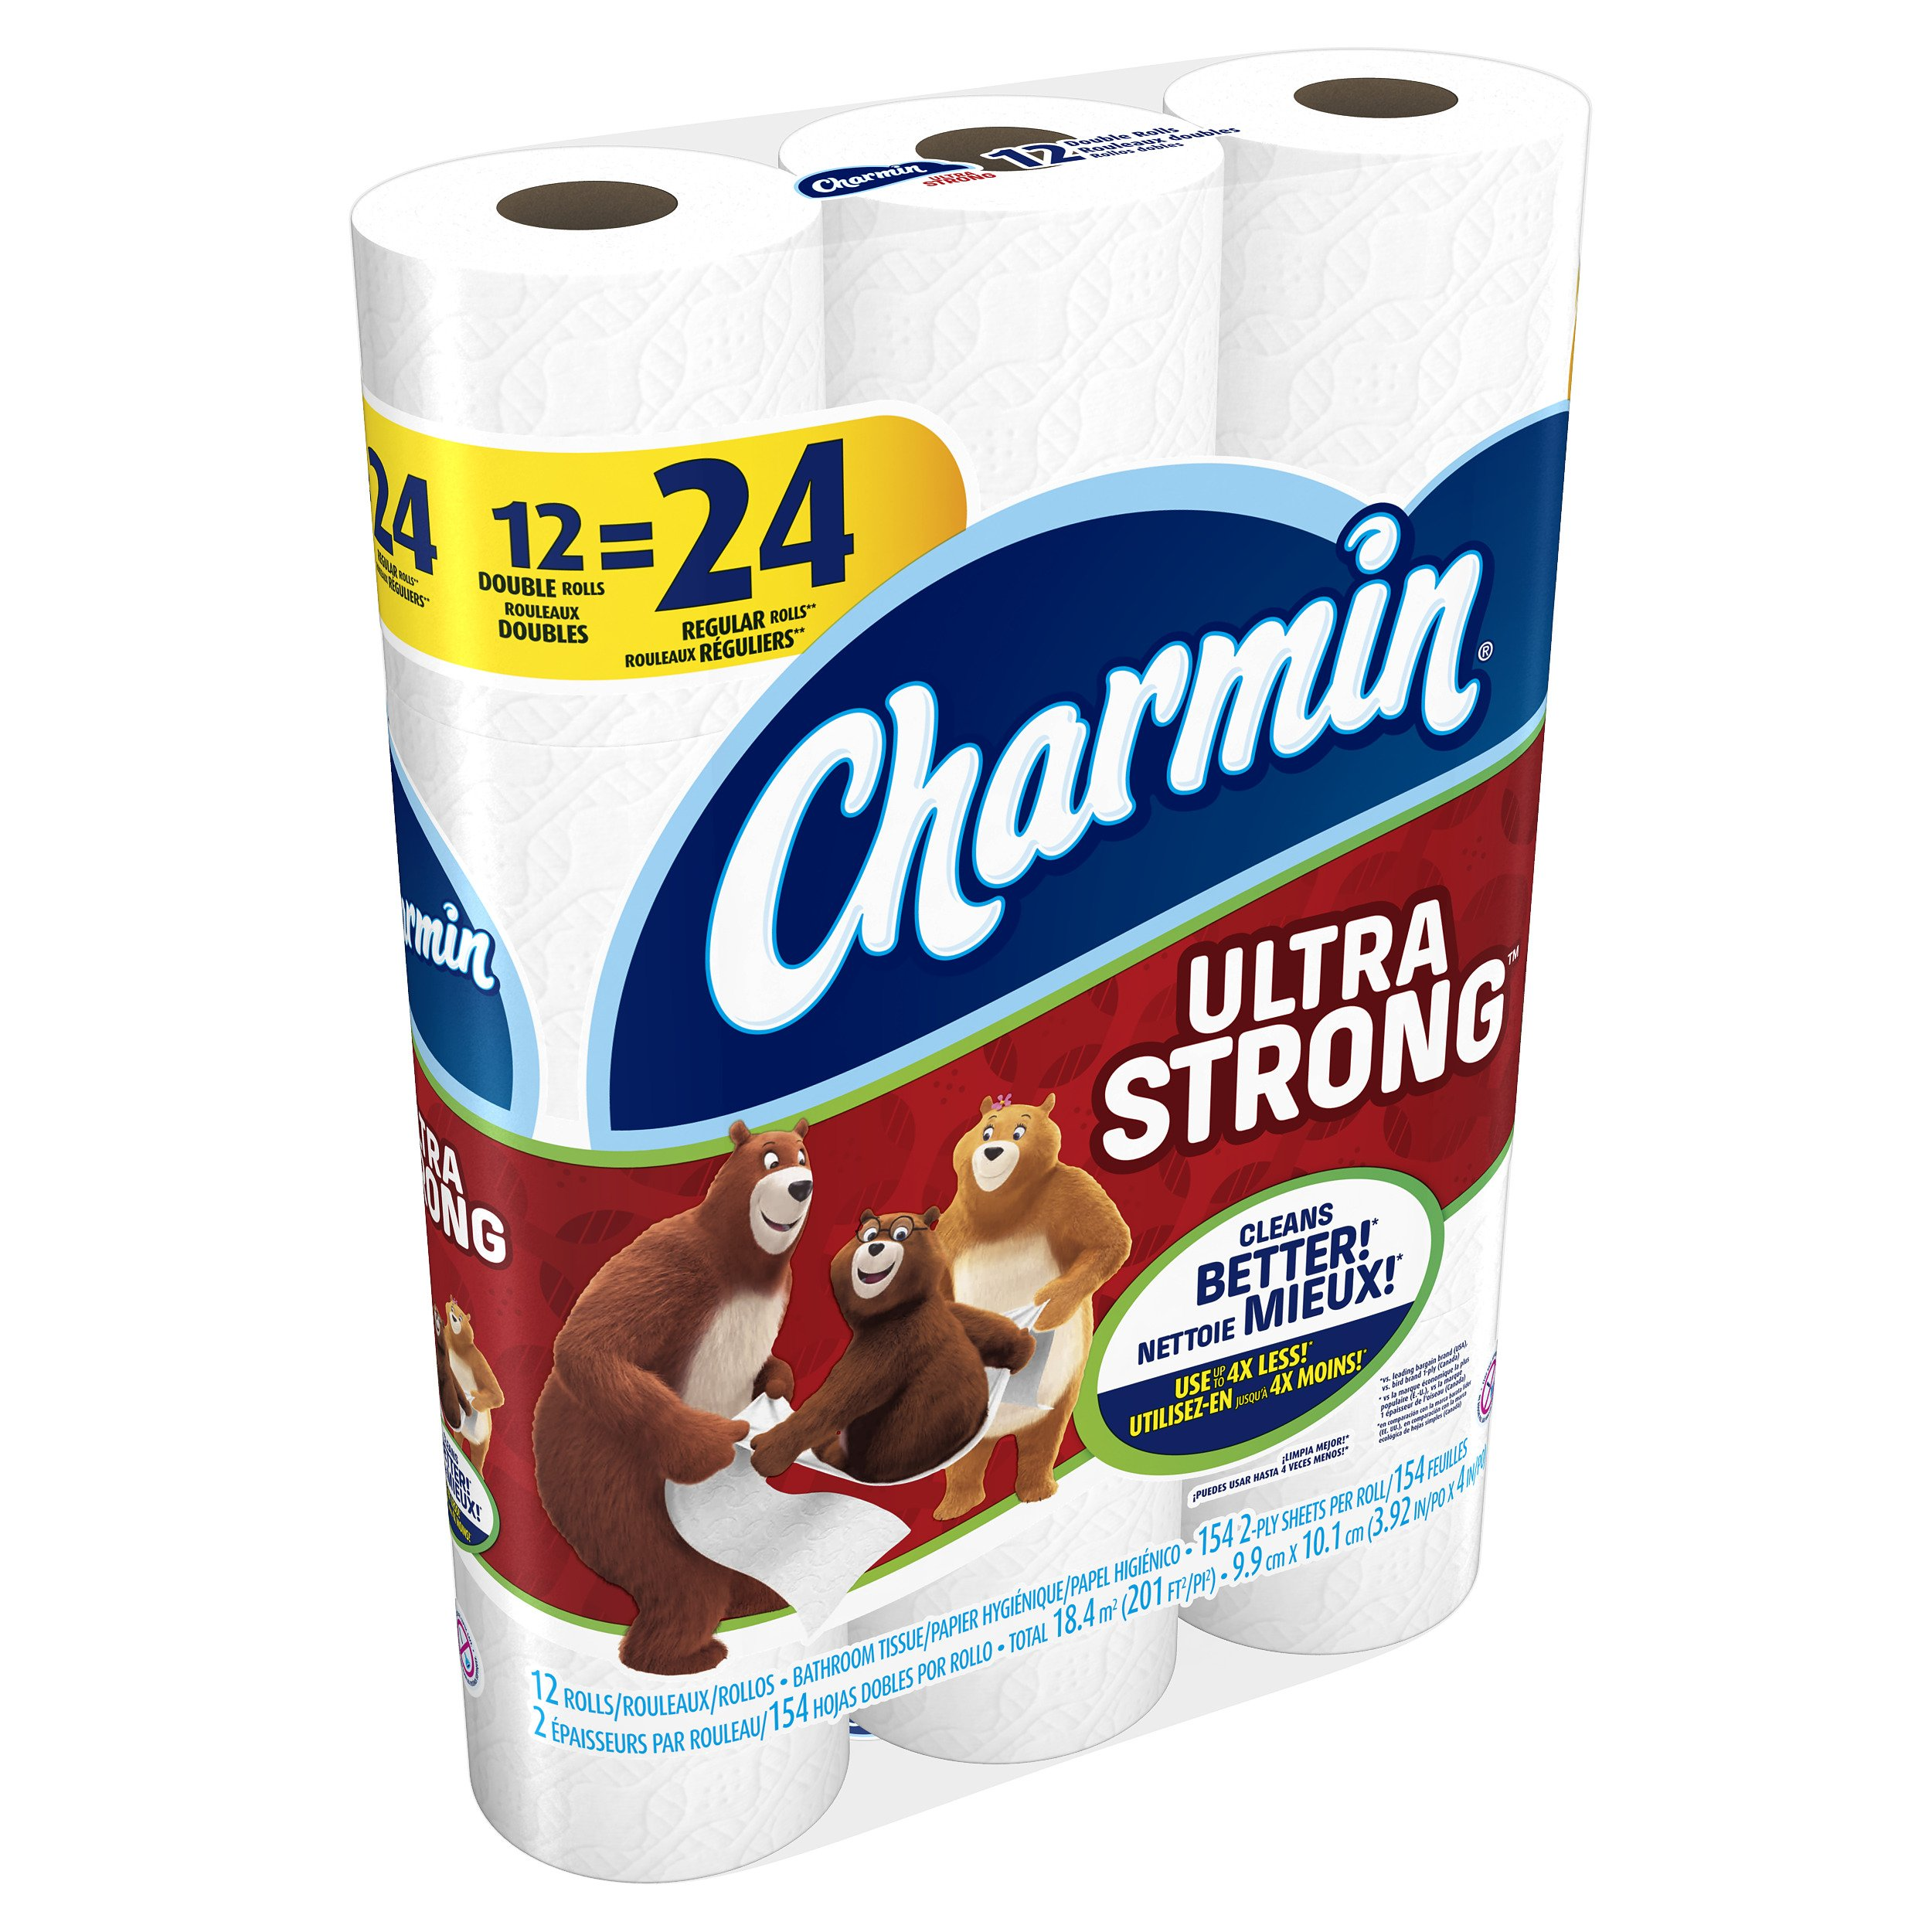 Charmin Ultra Strong Toilet Paper, Double Roll, 12 Count